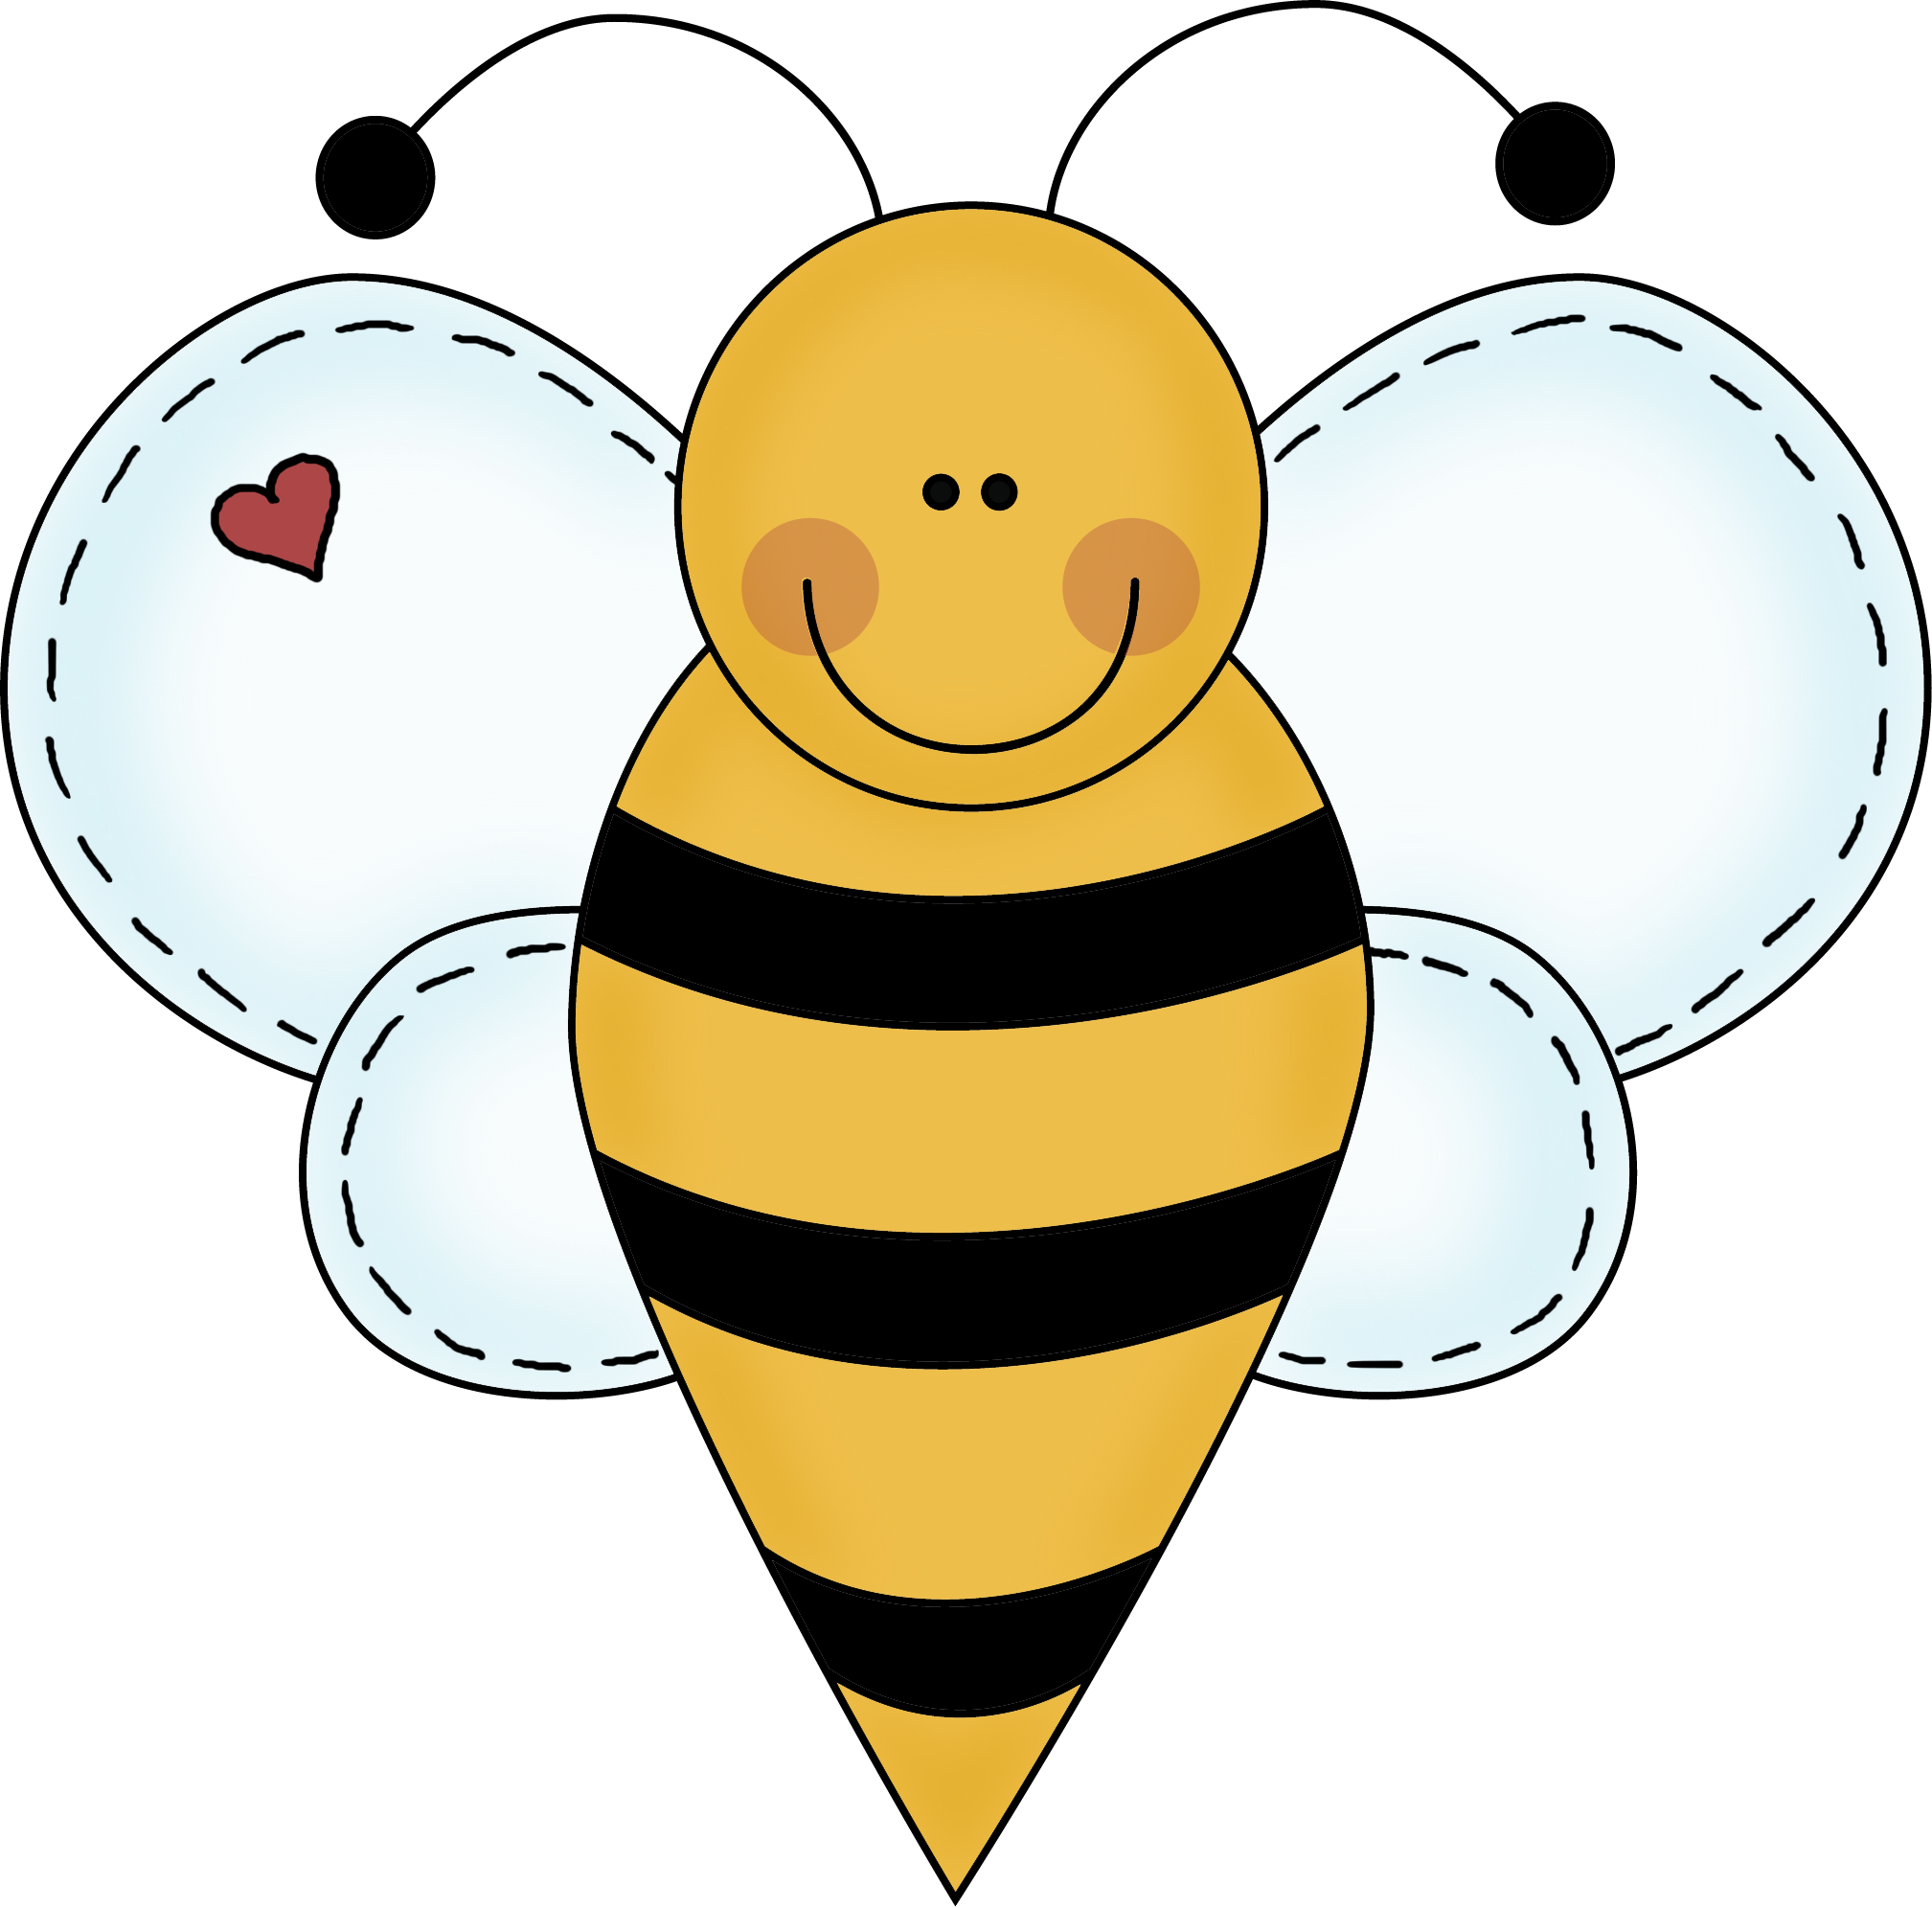 Spelling Bee Clipart Black And White | Clipart Panda - Free Clipart ...